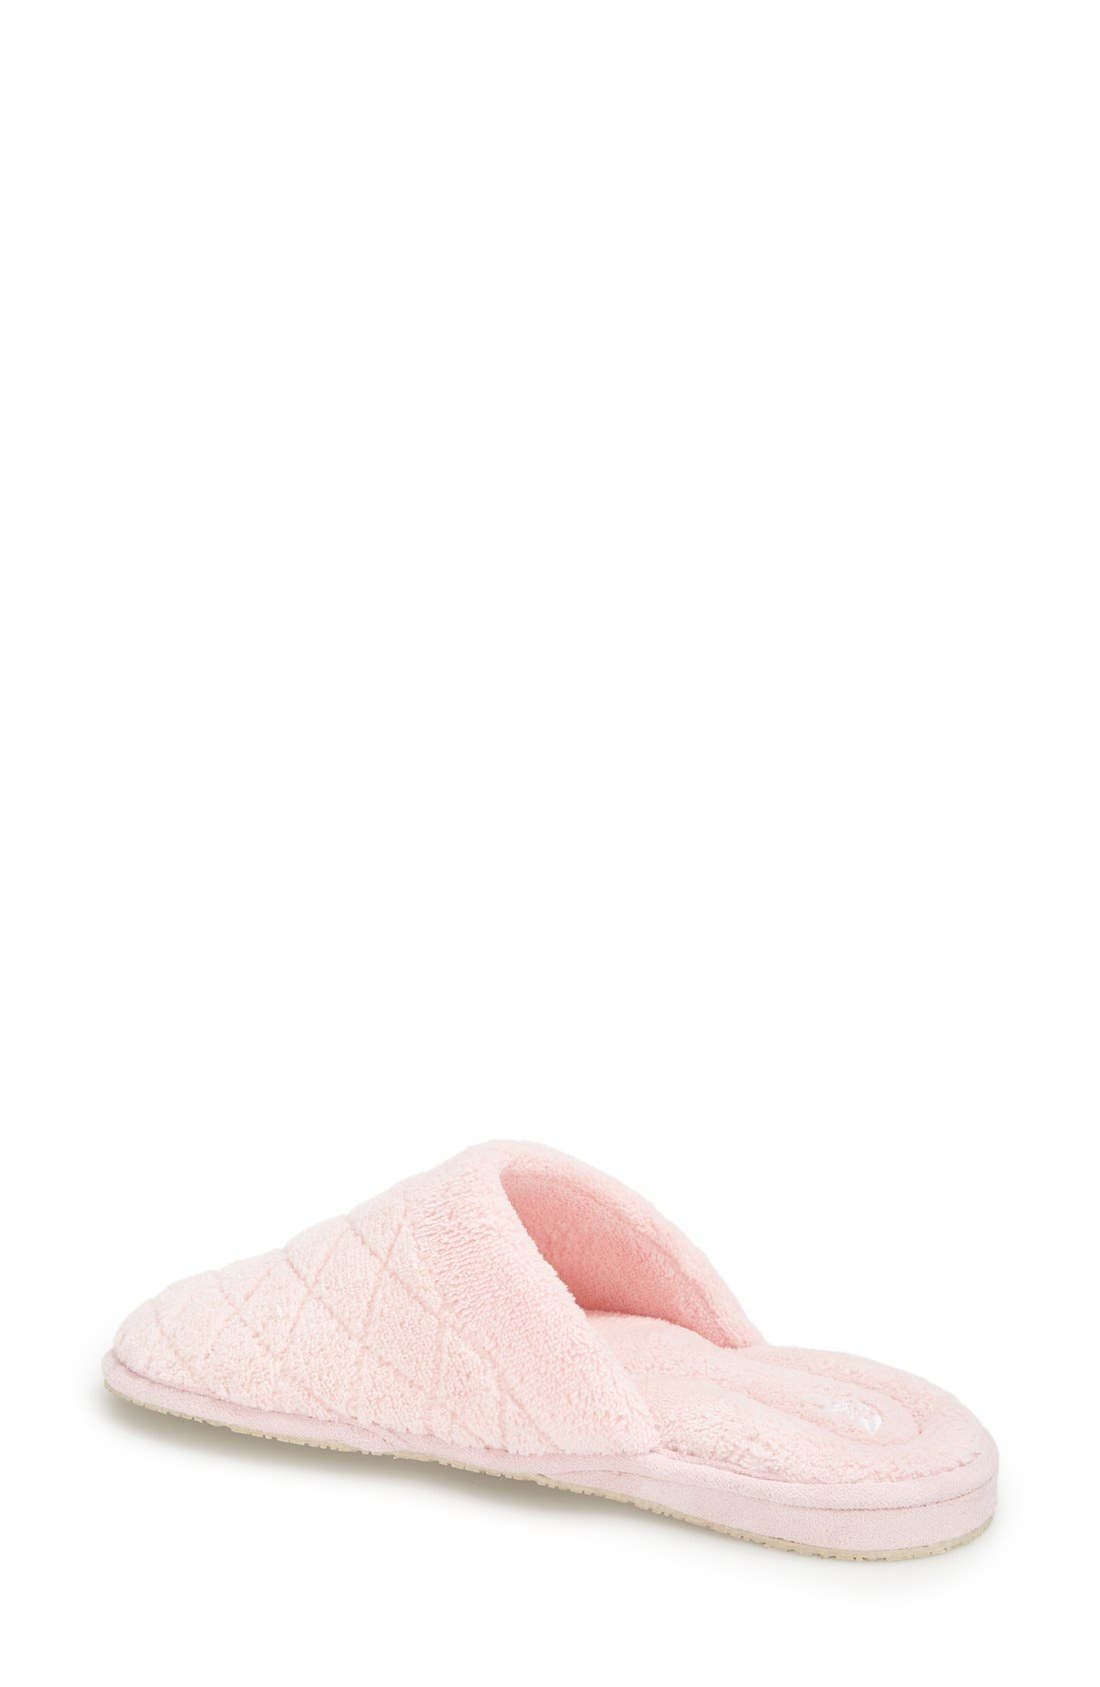 'Aria' Plush Slipper,                             Alternate thumbnail 6, color,